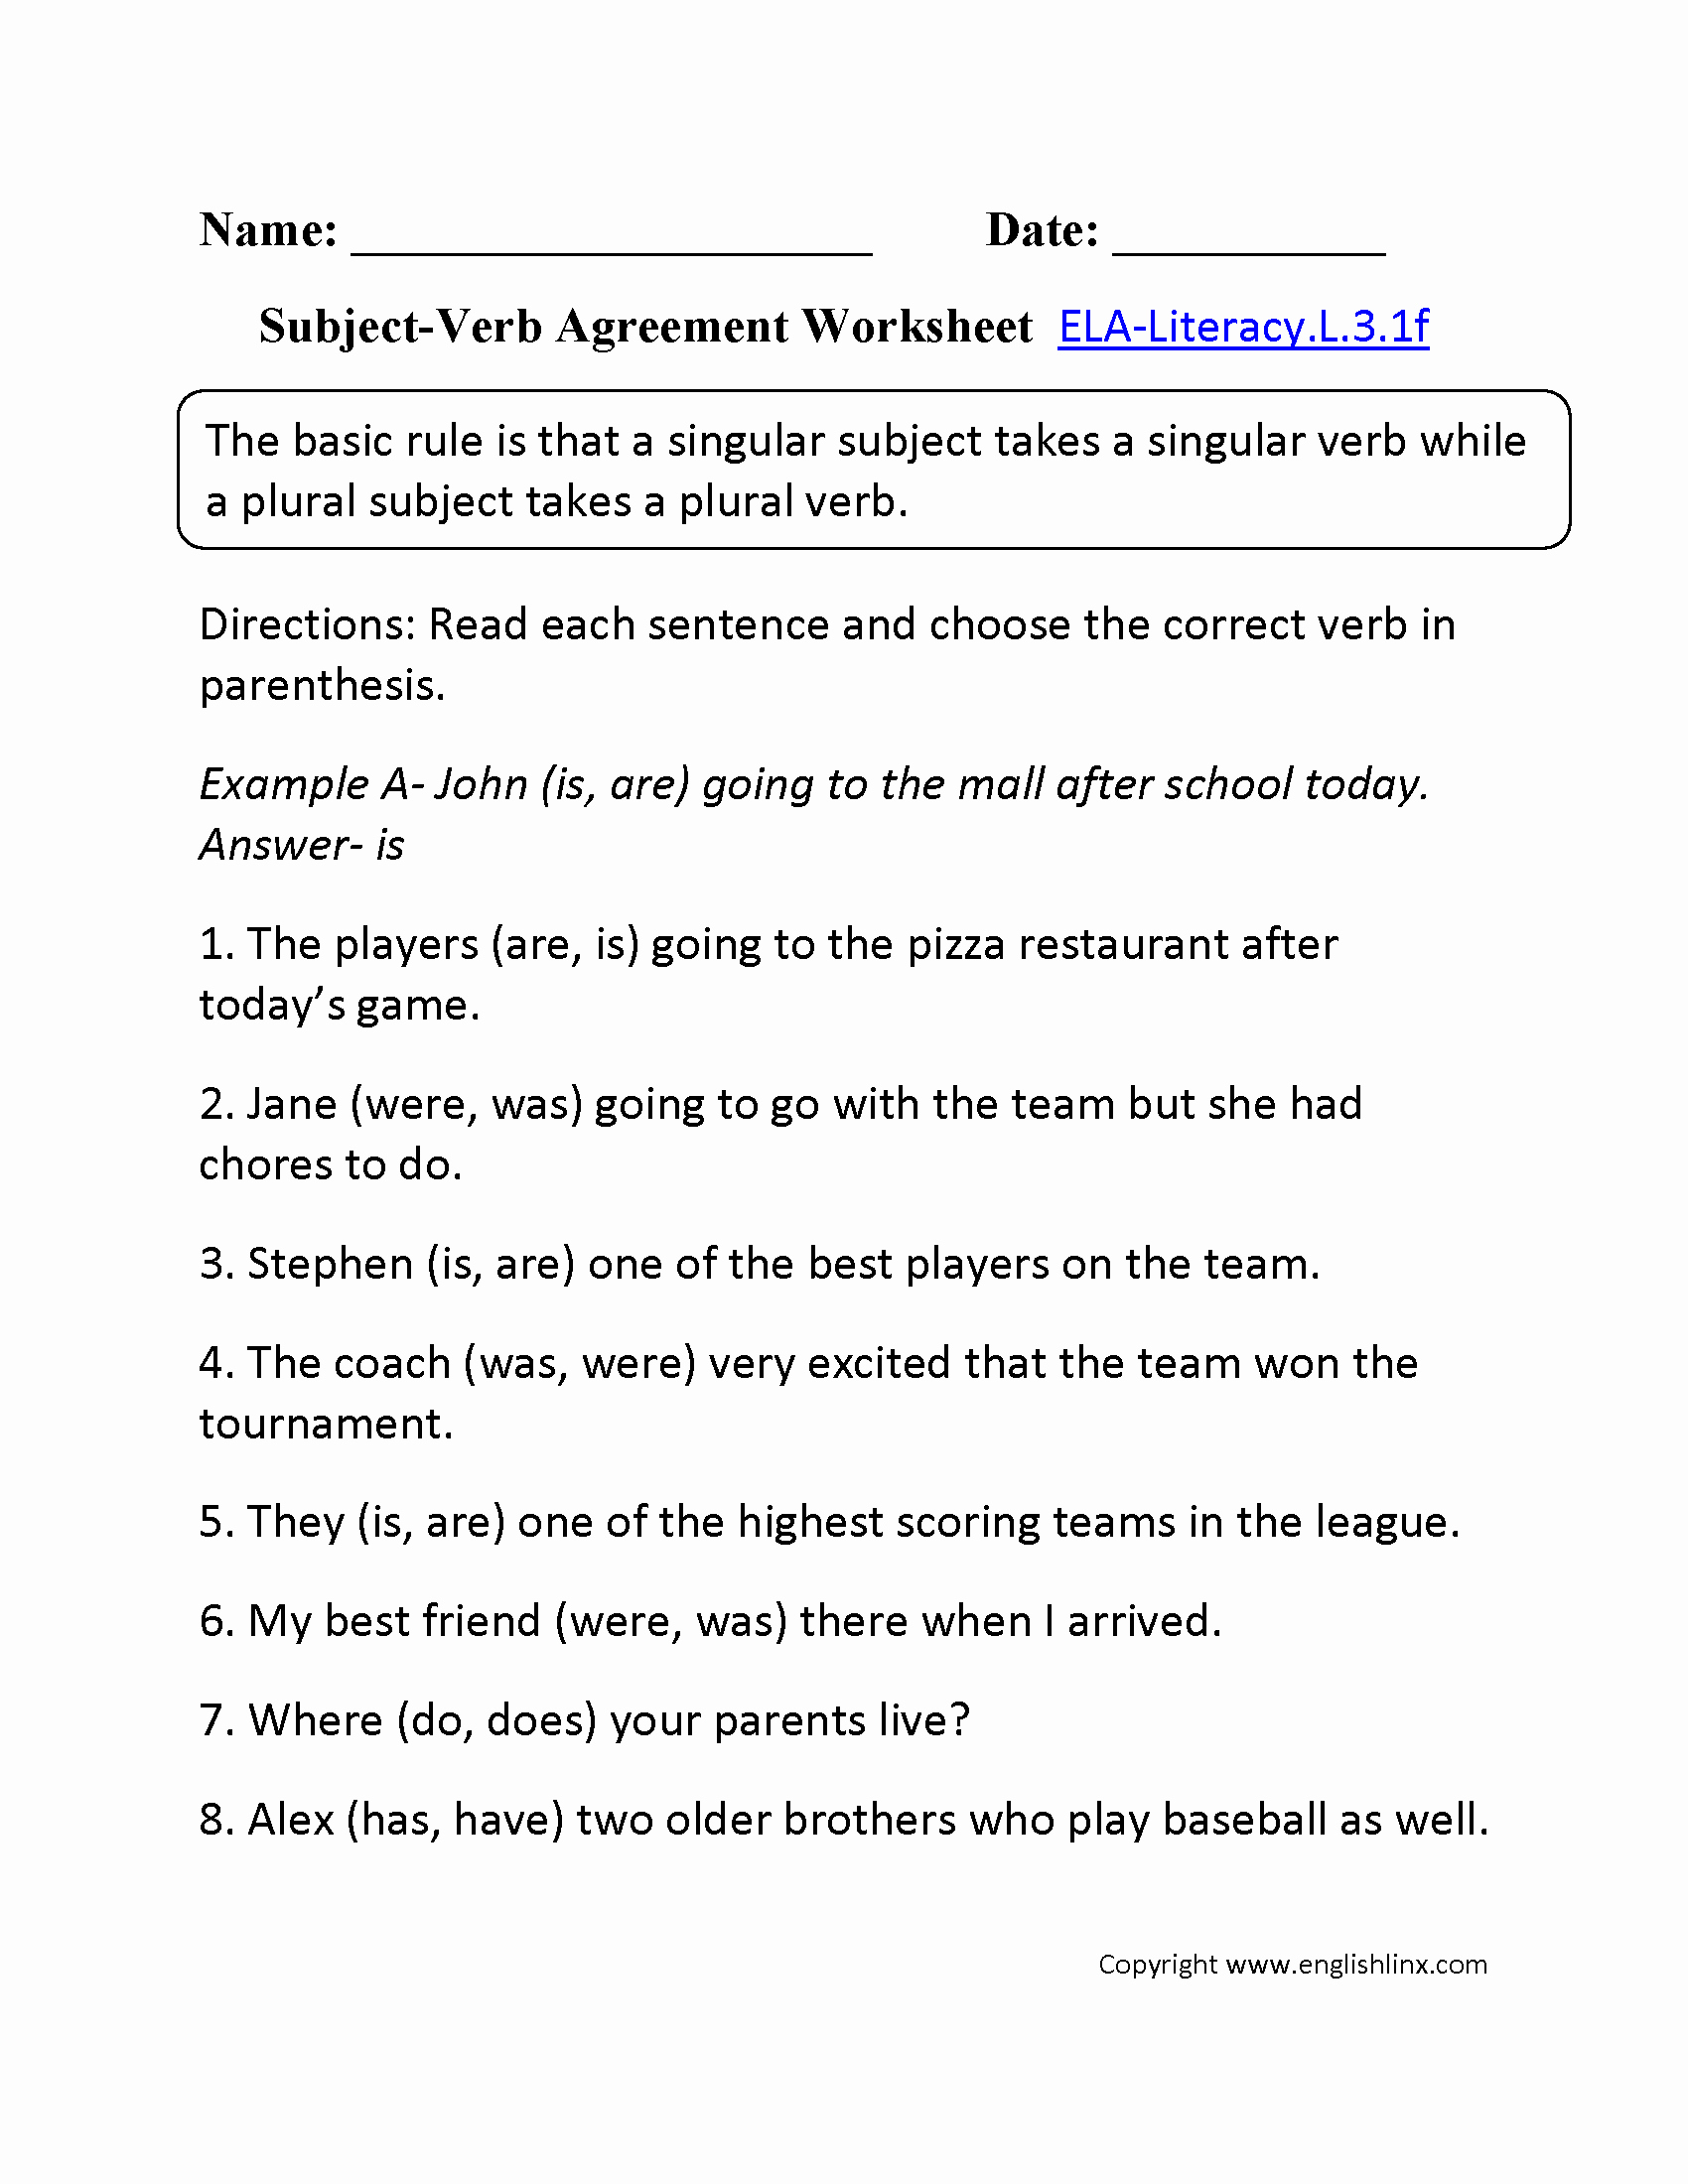 Subject Verb Agreement Worksheet New Subject Verb Agreement Worksheet 2 L 3 1